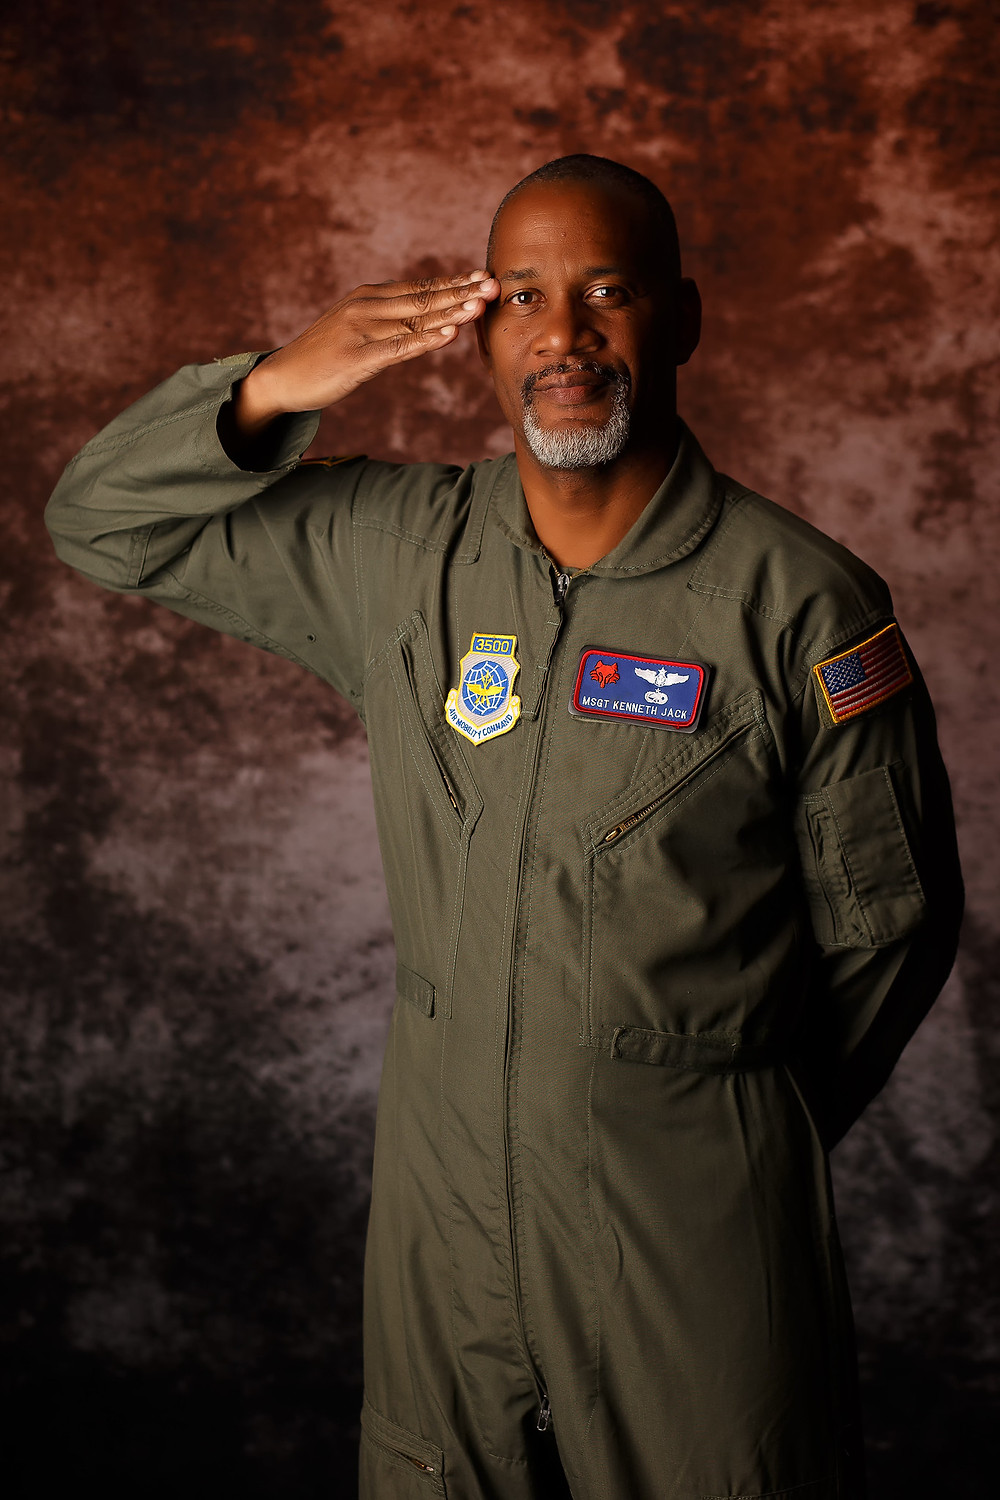 Master Sergeant K Jack of the United States Air Forcesaluting in his flight suit